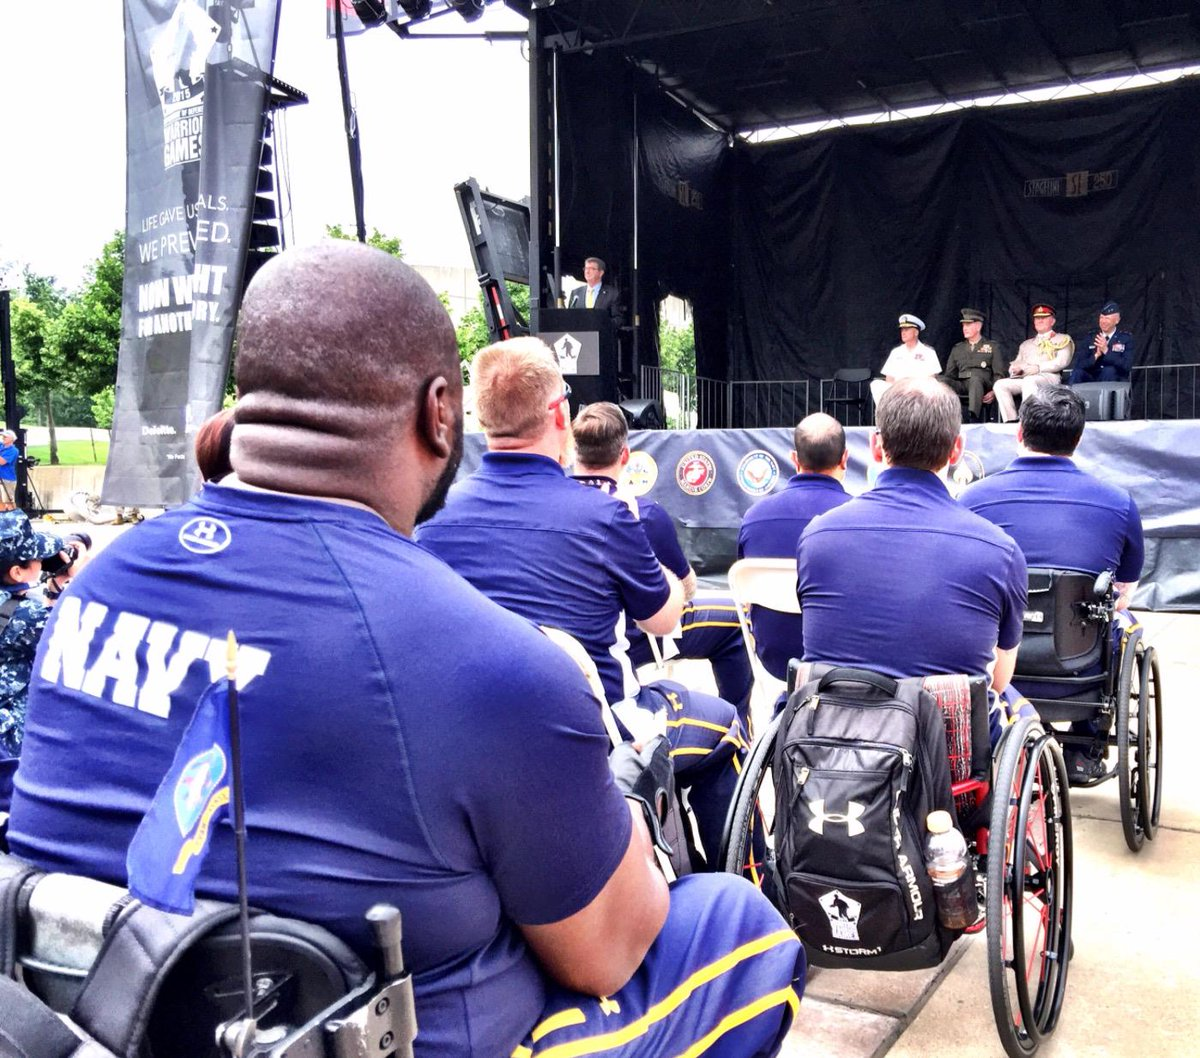 #SecDef Ashton Carter welcomes athletes #WarriorGames #TeamNavy @navysafeharbor http://t.co/LrJgUOywJH